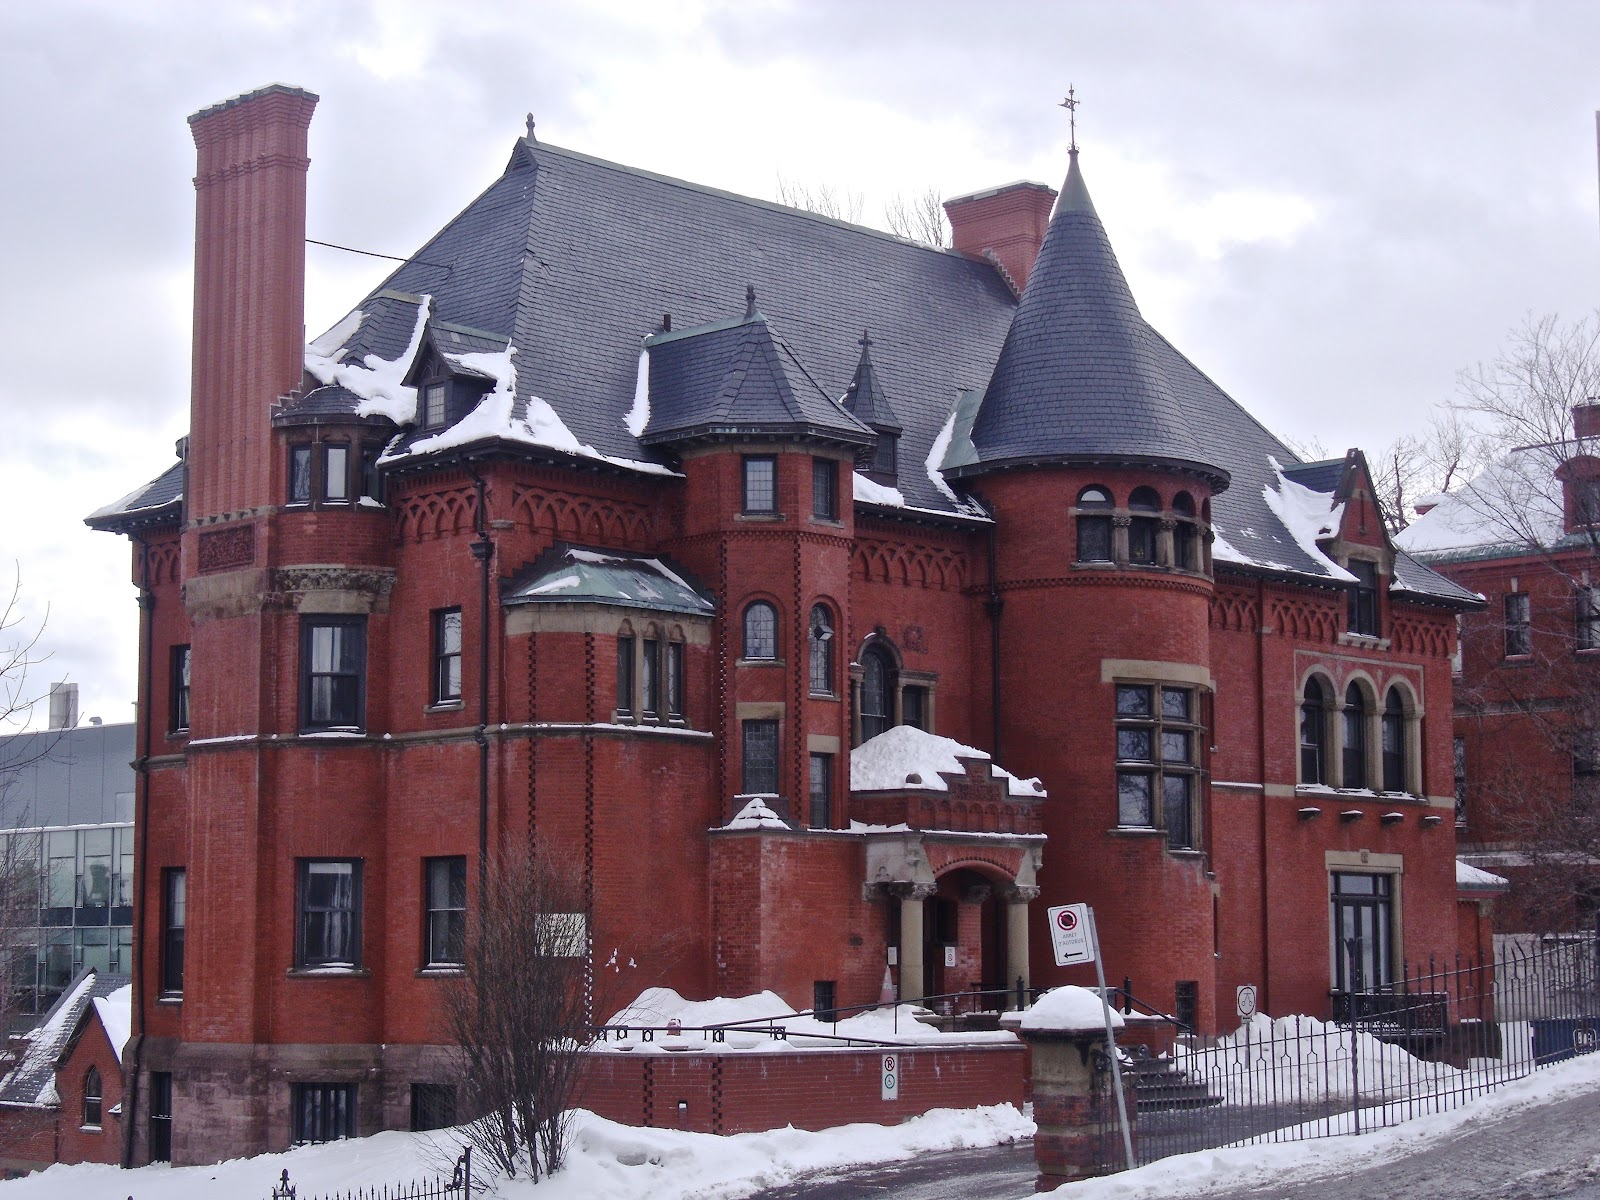 Most Iconic Houses in Canada real estate homes mansions historic lady meredith house ardvana